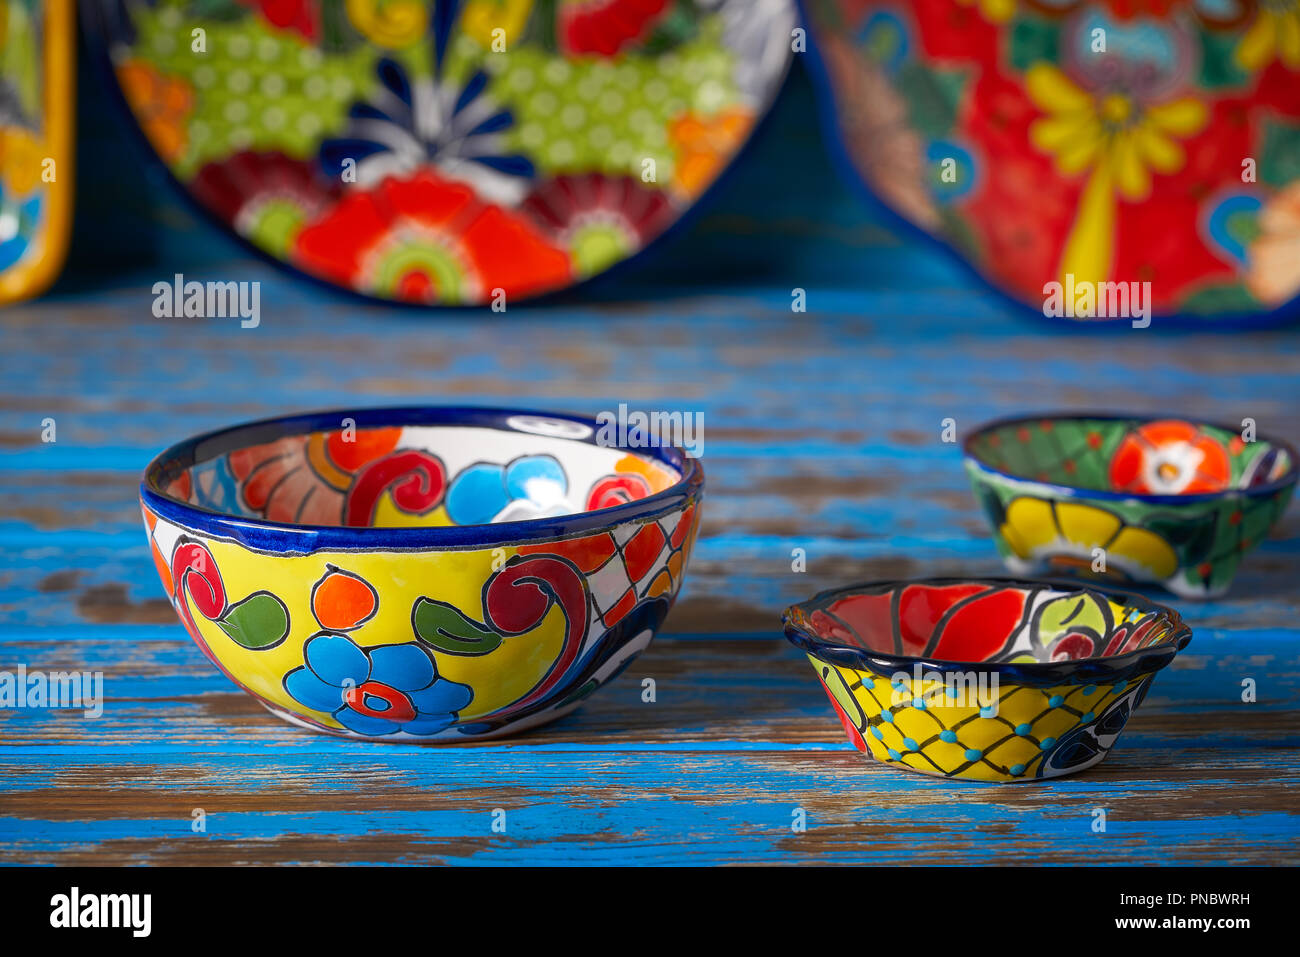 Decorative talavera immagini decorative talavera fotos stock alamy